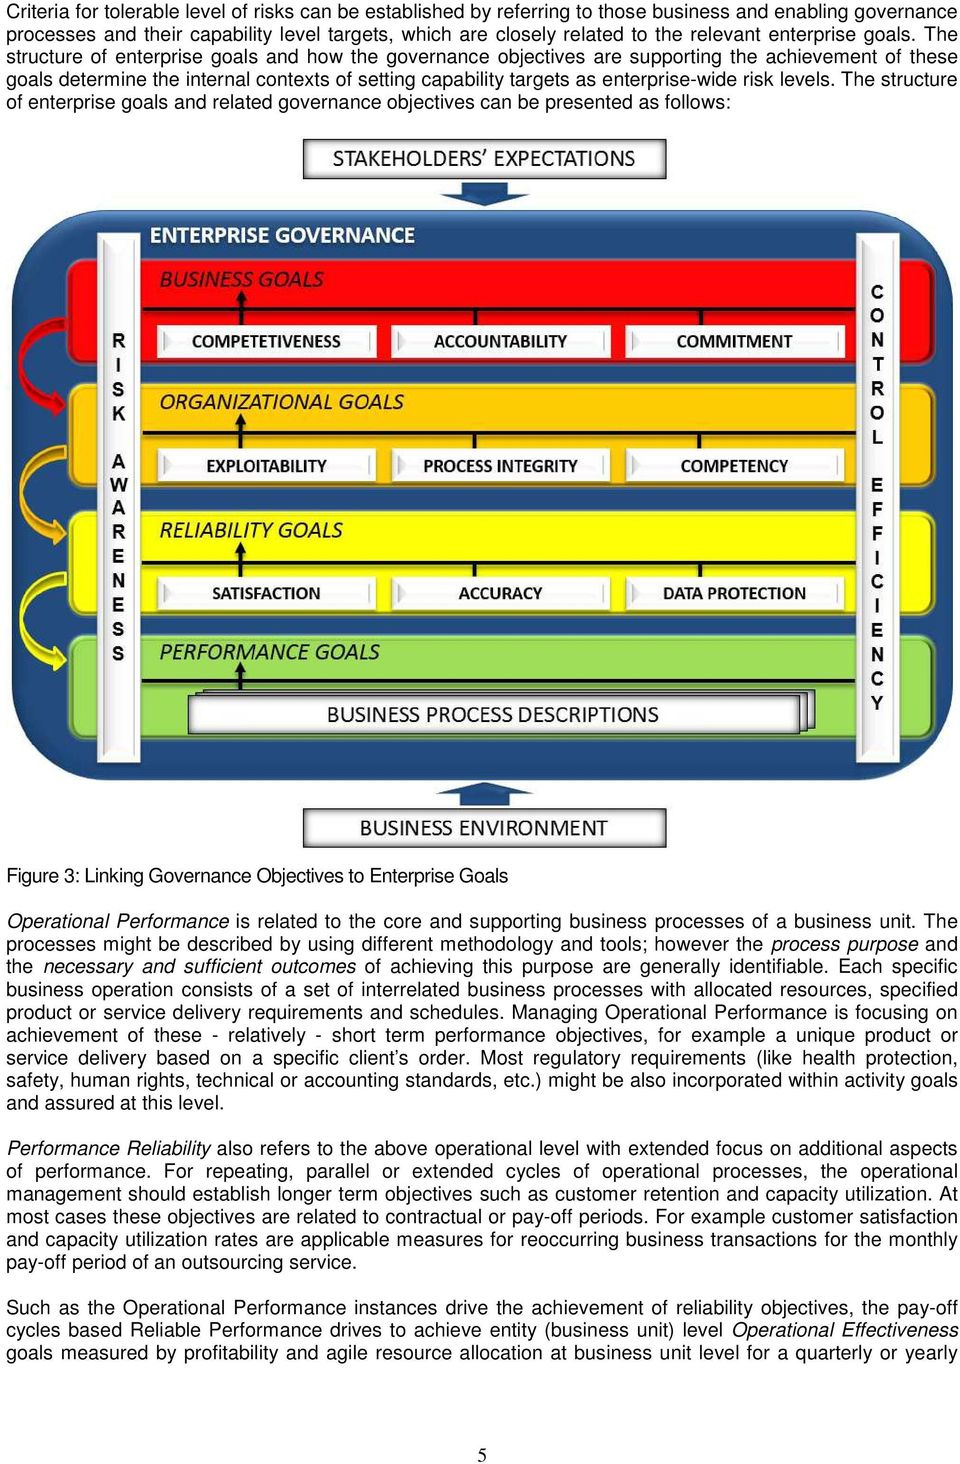 The structure of enterprise goals and how the governance objectives are supporting the achievement of these goals determine the internal contexts of setting capability targets as enterprise-wide risk